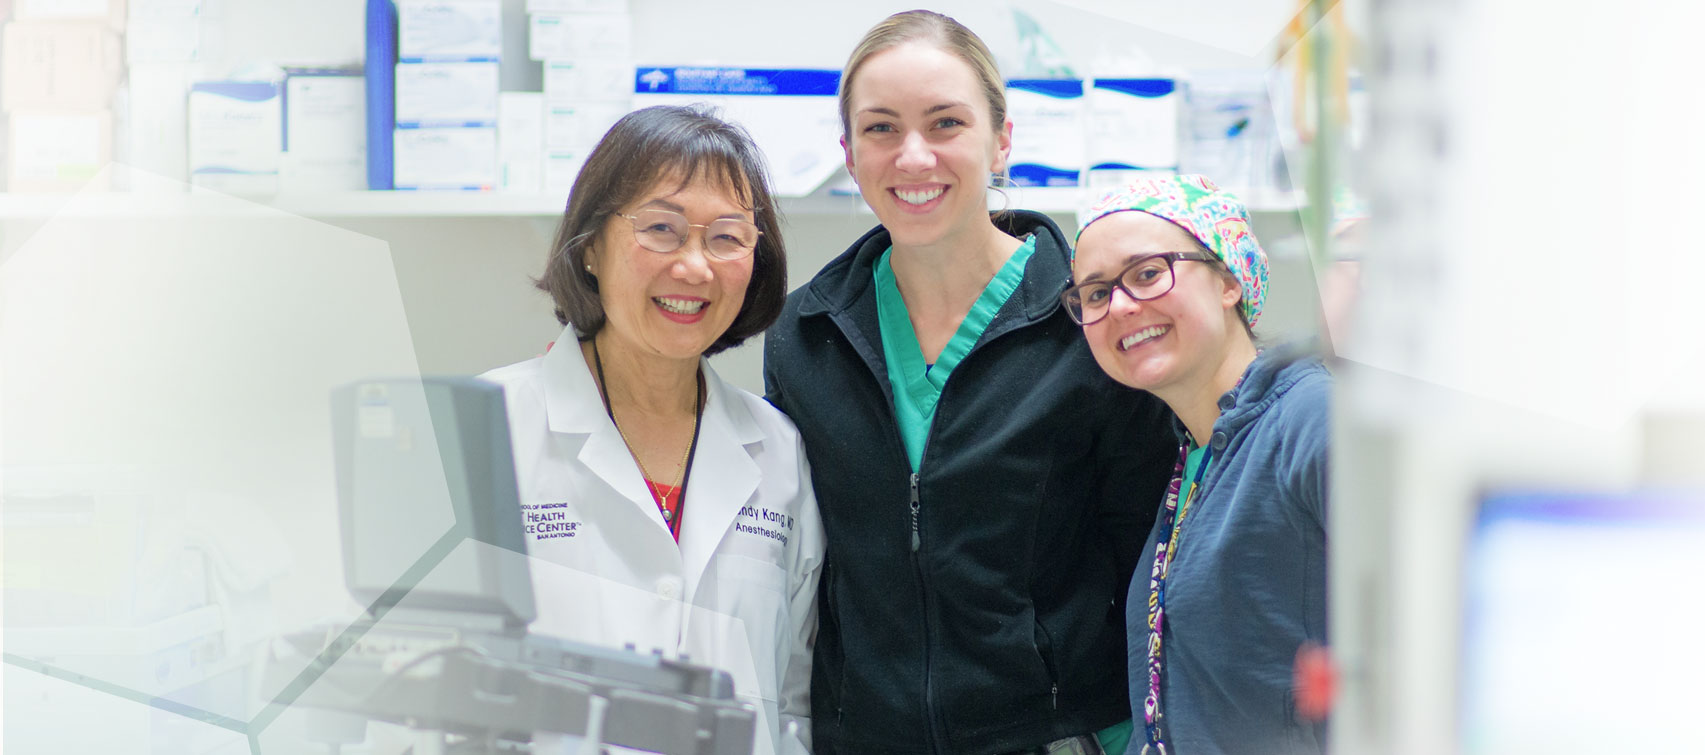 Wendy B. Kang, M.D., J.D., offers her students insight from a medical doctor with a law degree. Her unusual background is helping to prepare the next generation of anesthesiologists.